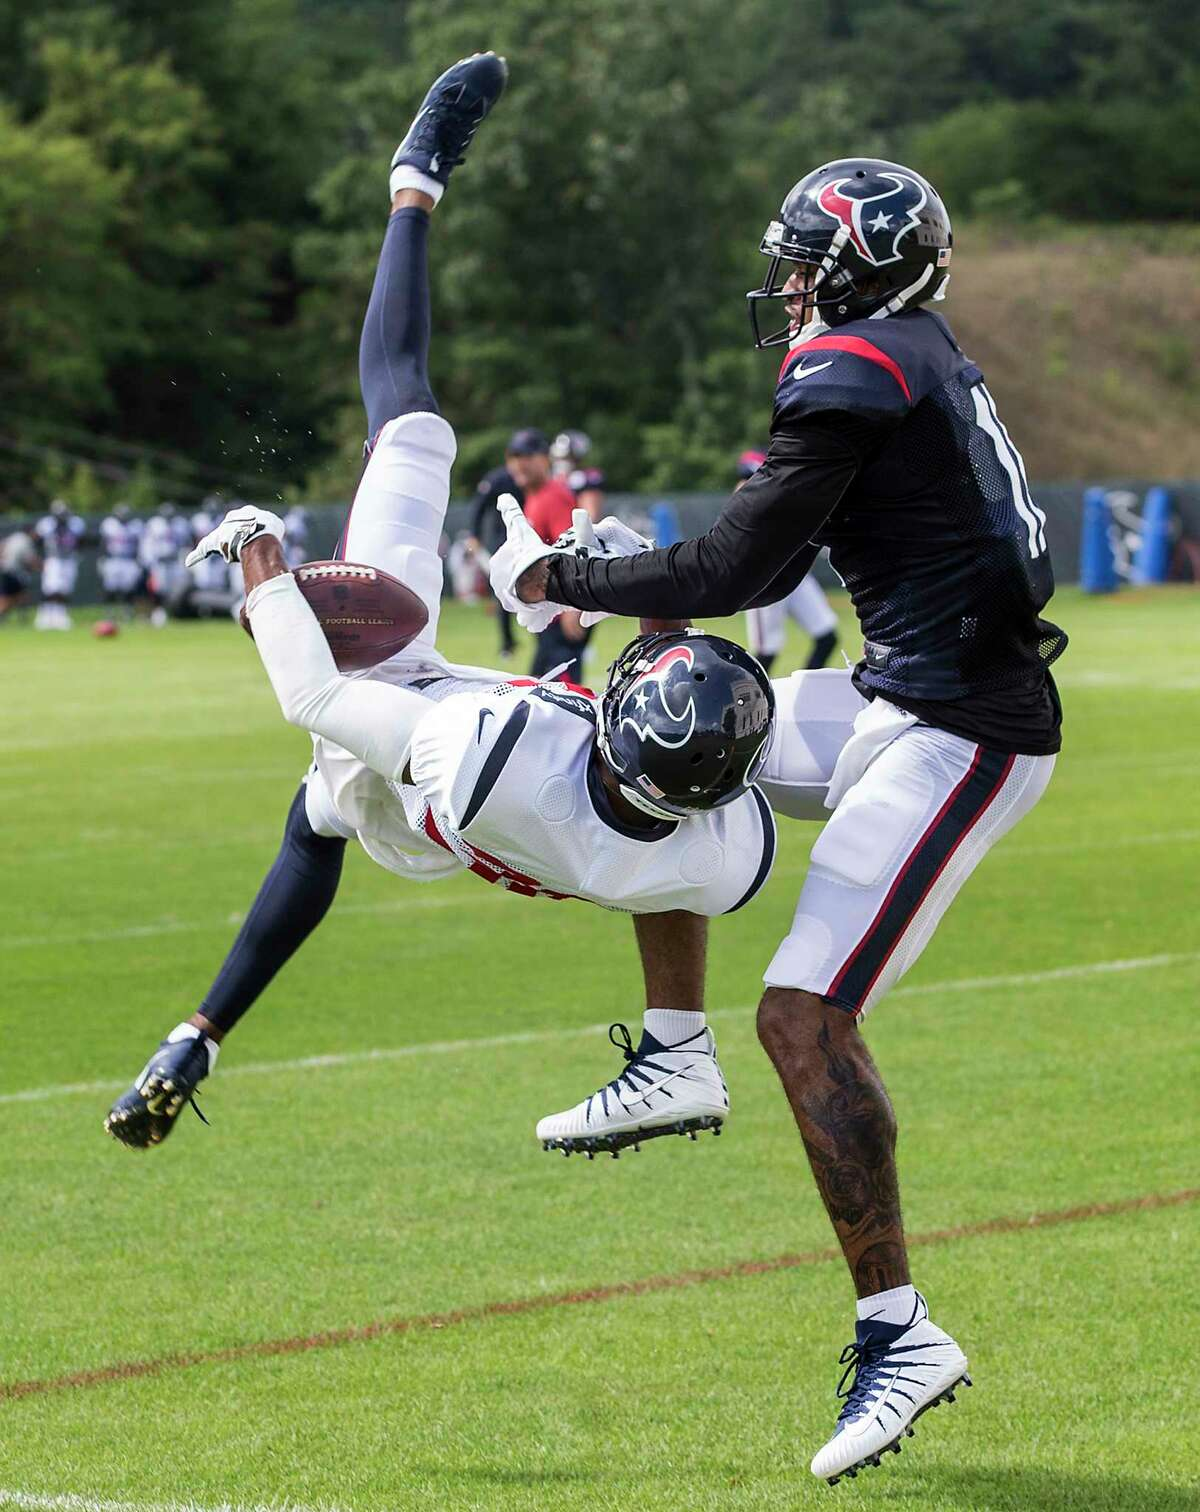 Houston Texans cornerback Kevin Johnson (30) breaks up a pass intended for wide receiver Jaelen Strong (11) during training camp at The Greenbrier on Saturday, Aug. 12, 2017, in White Sulphur Springs, W.Va.